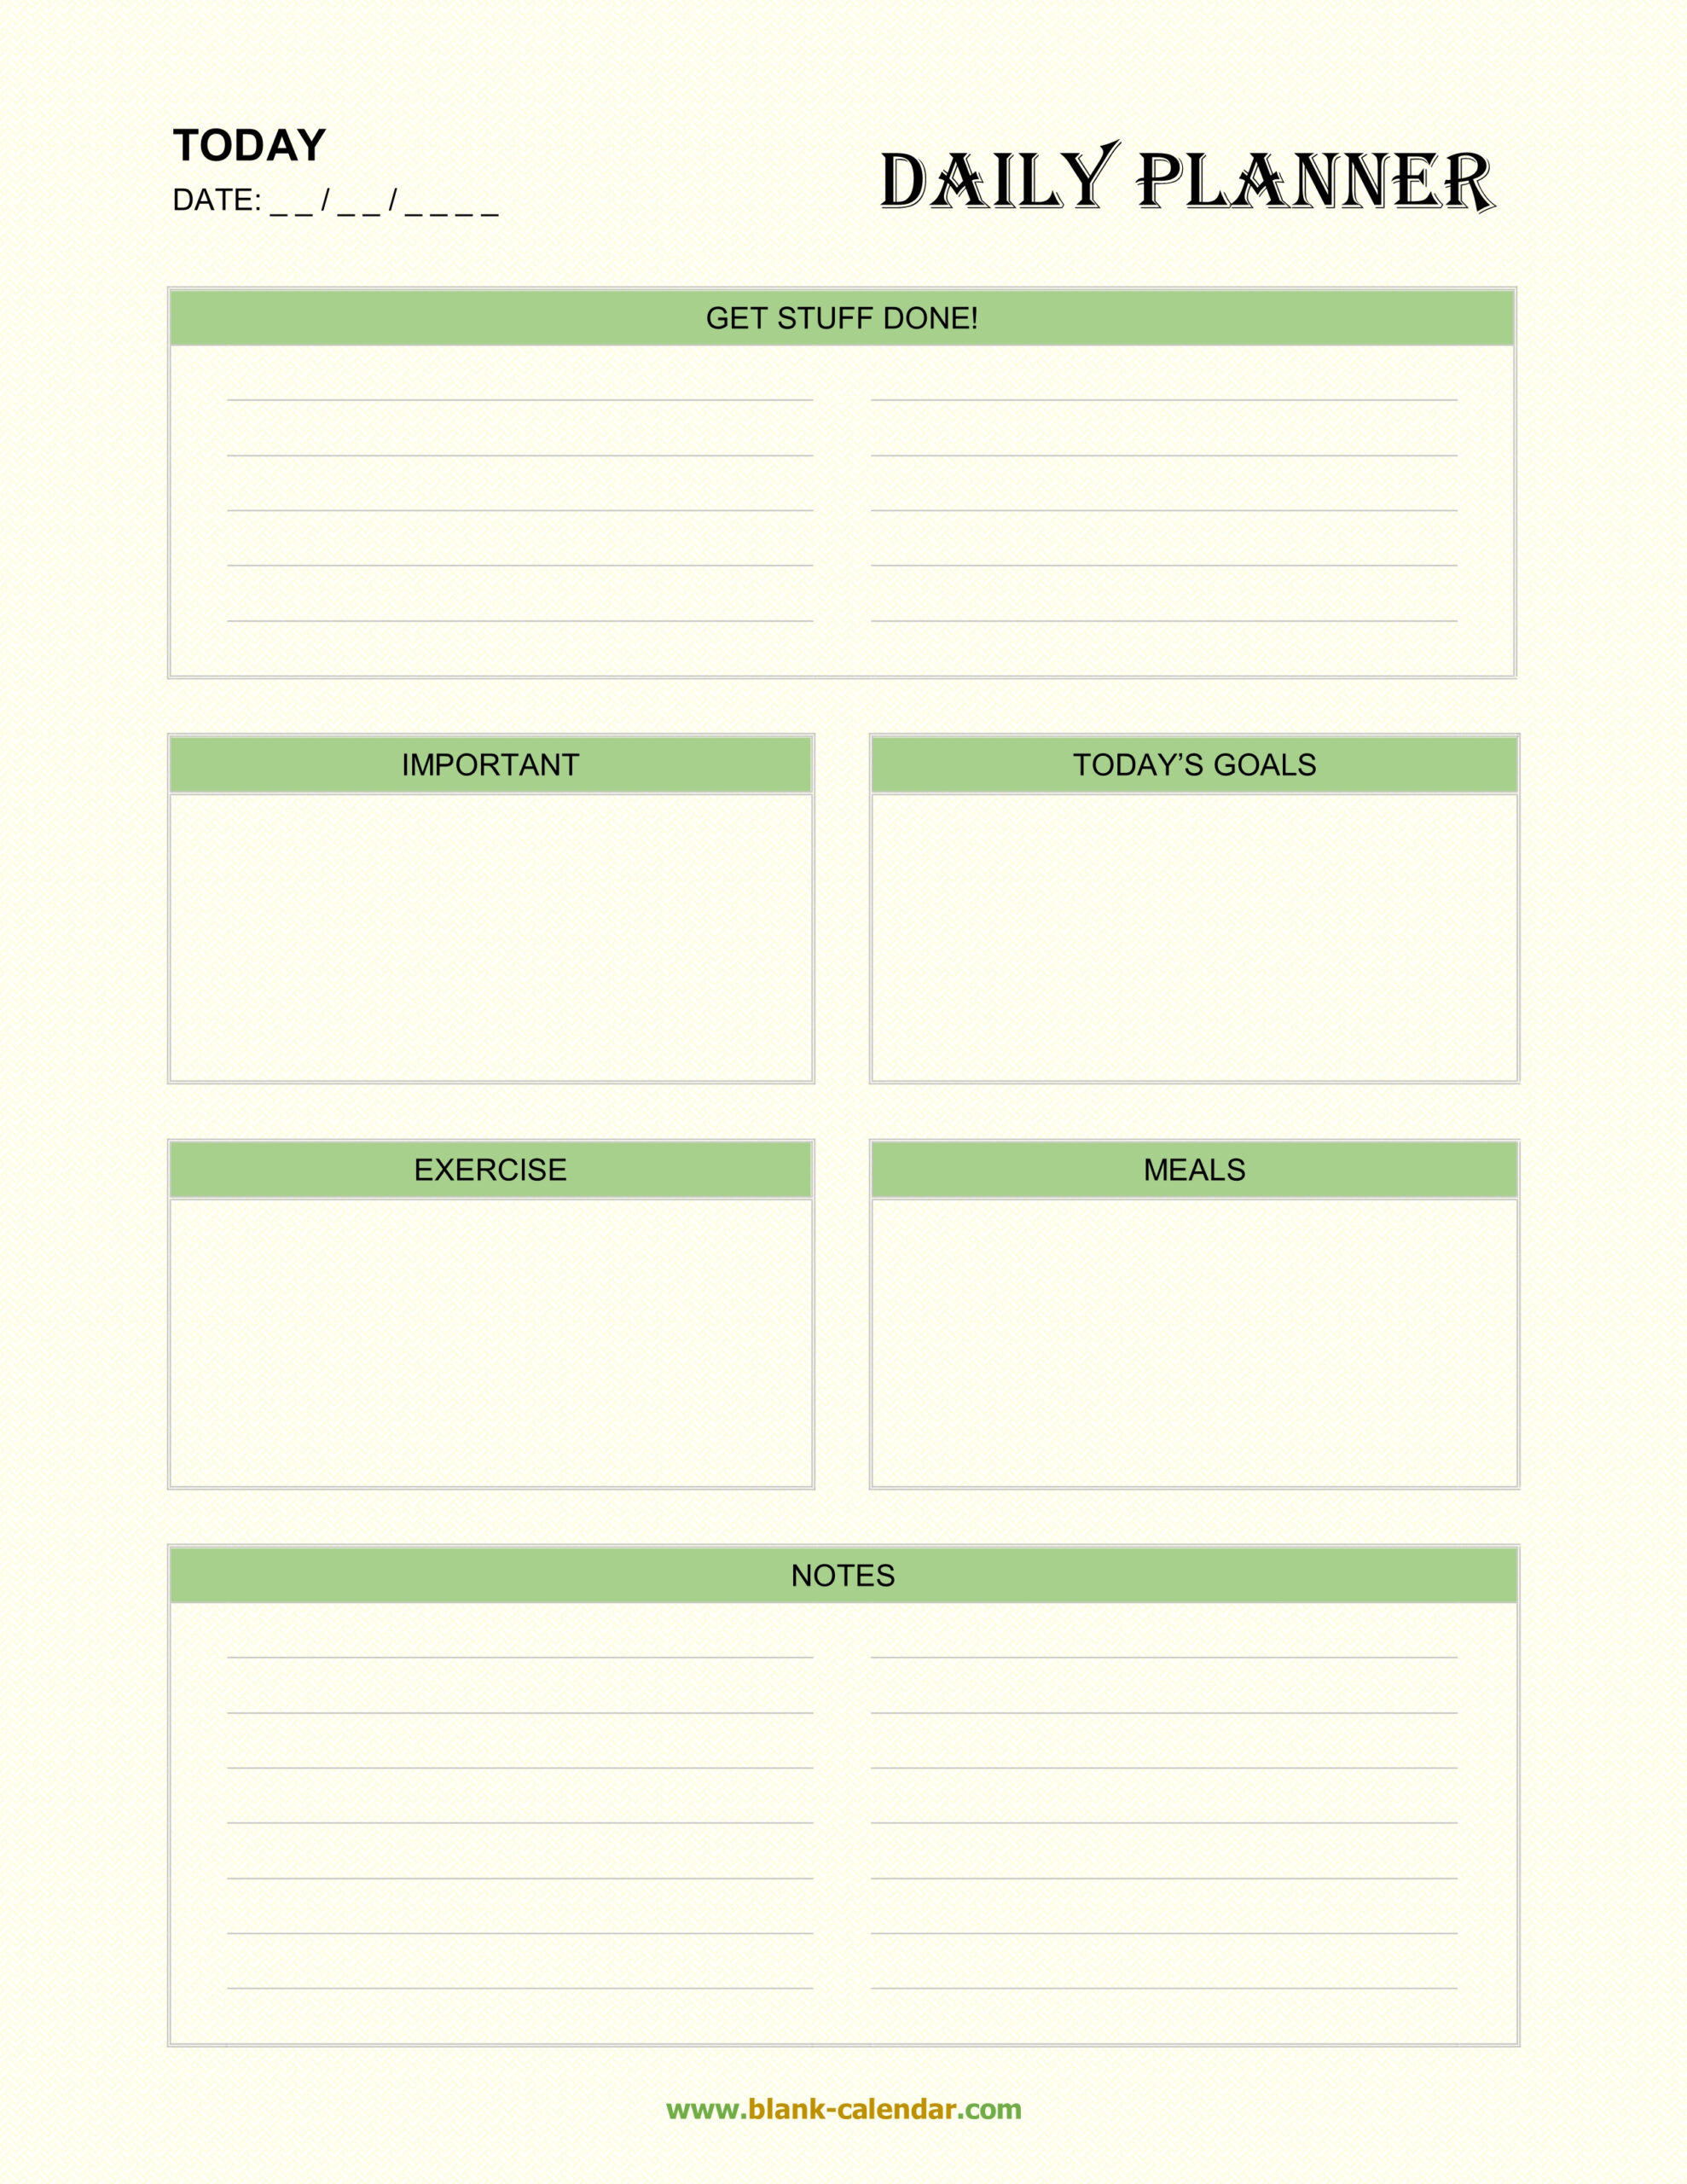 Daily Planner Templates (Word, Excel, Pdf) inside Excel Day Planner